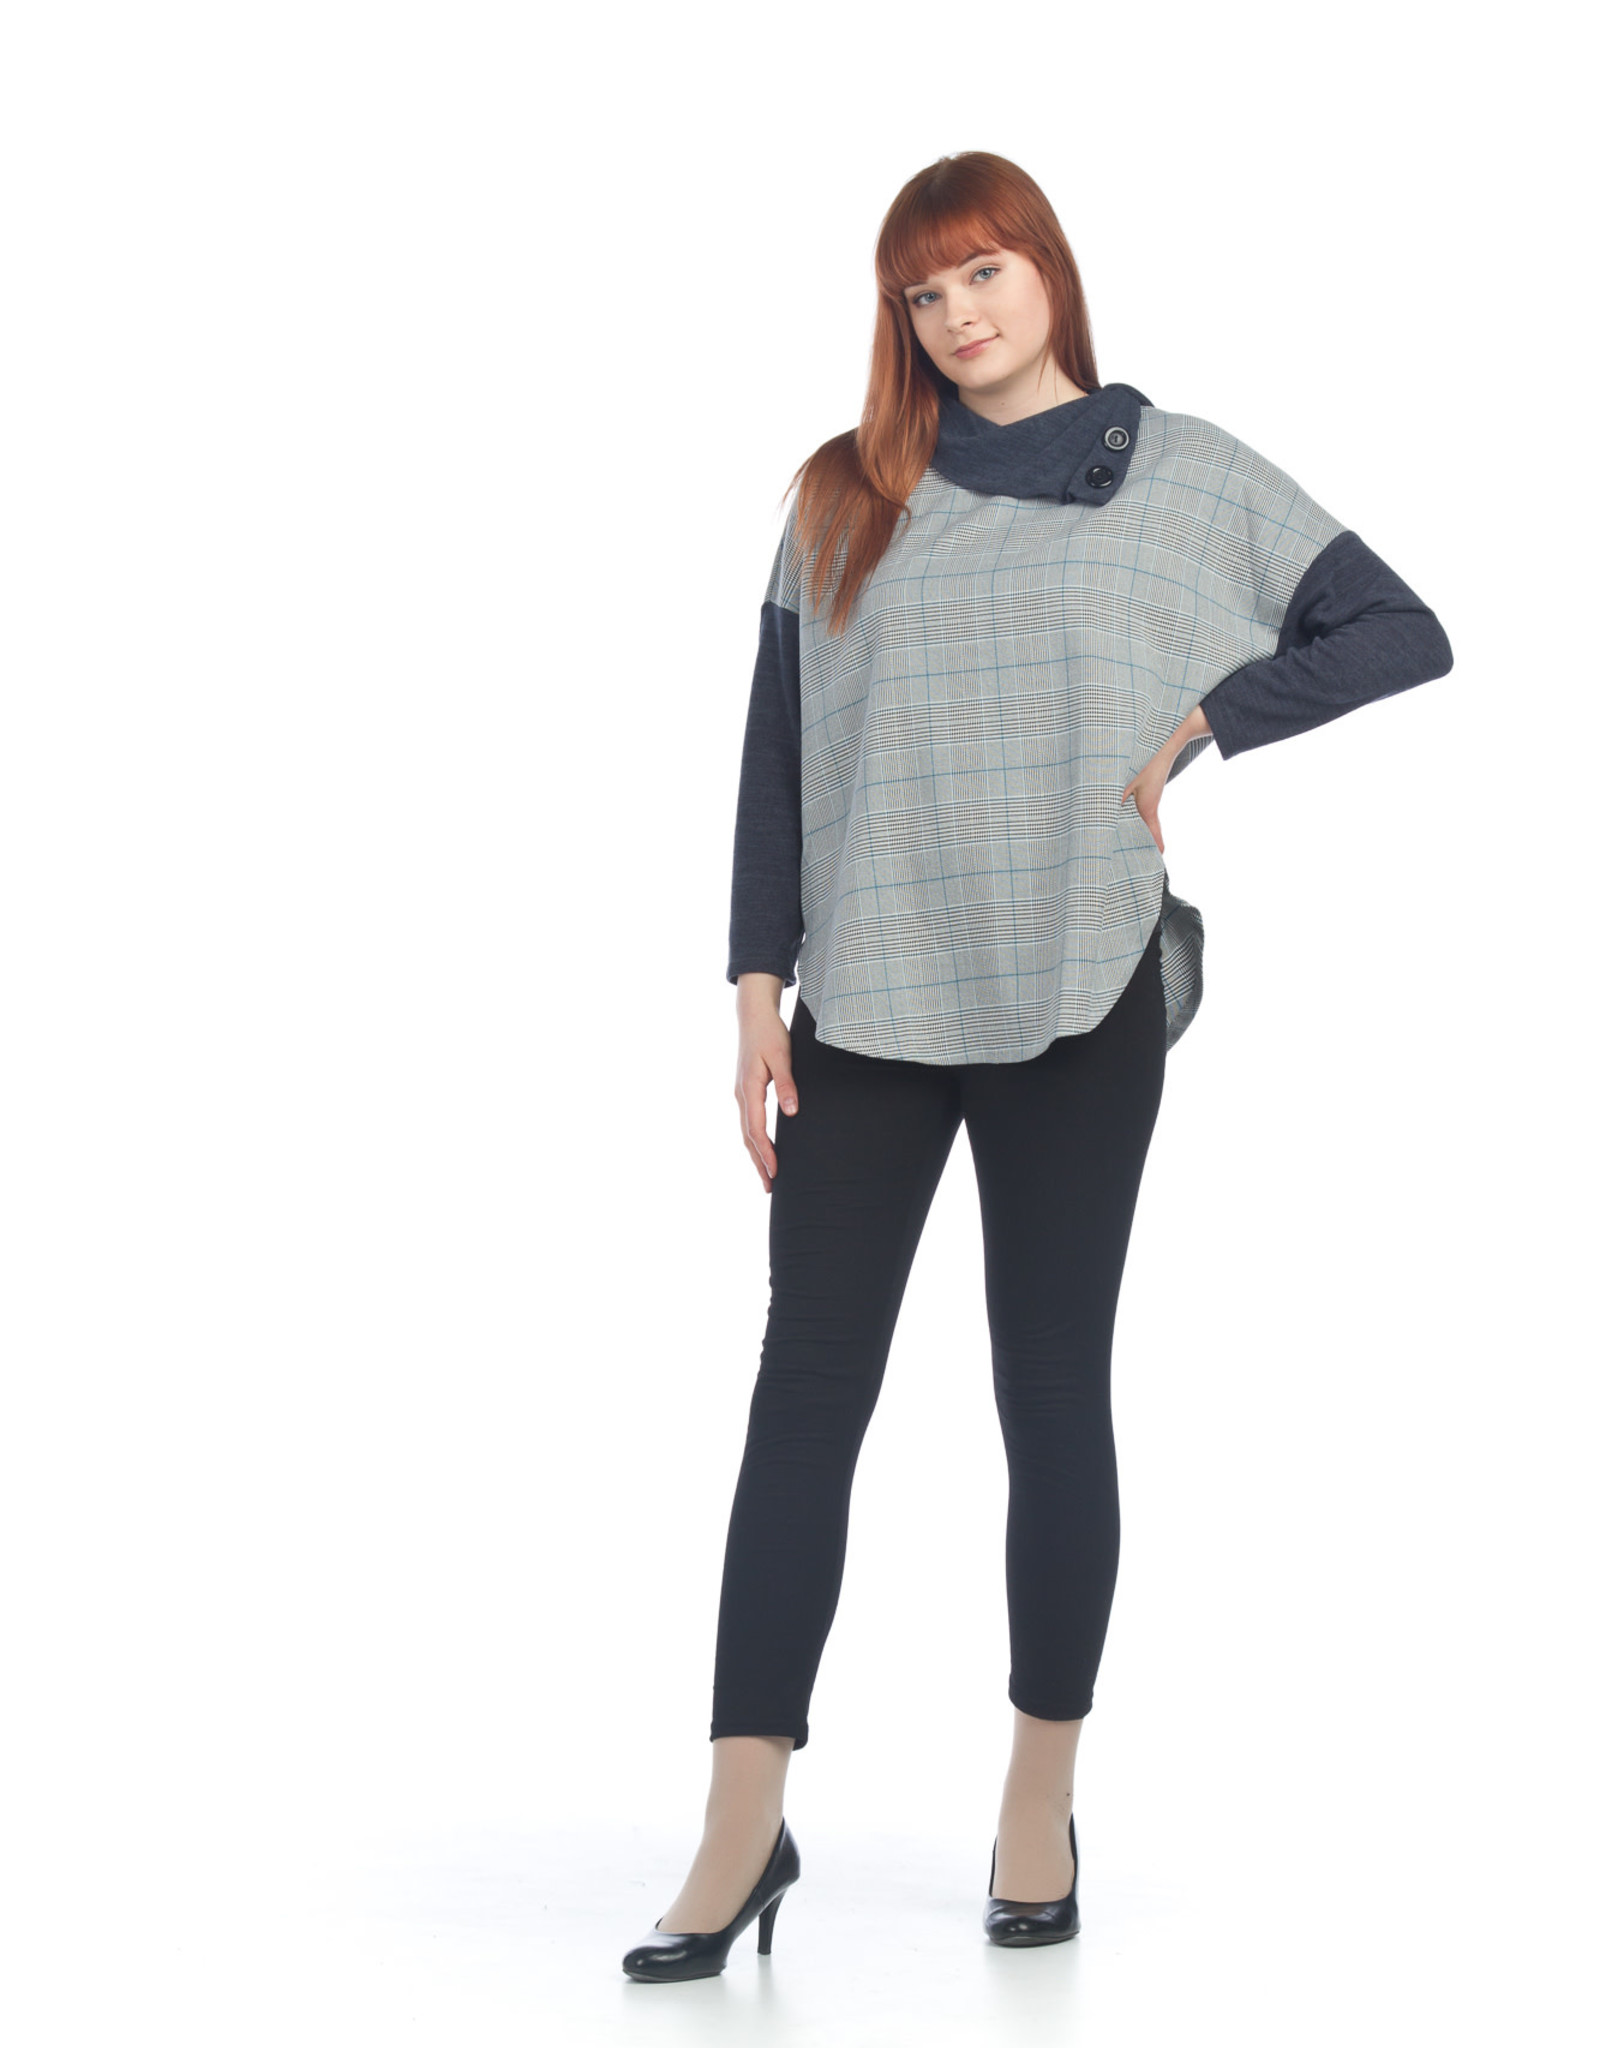 Plaid with Charcoal Collar and Sleeve